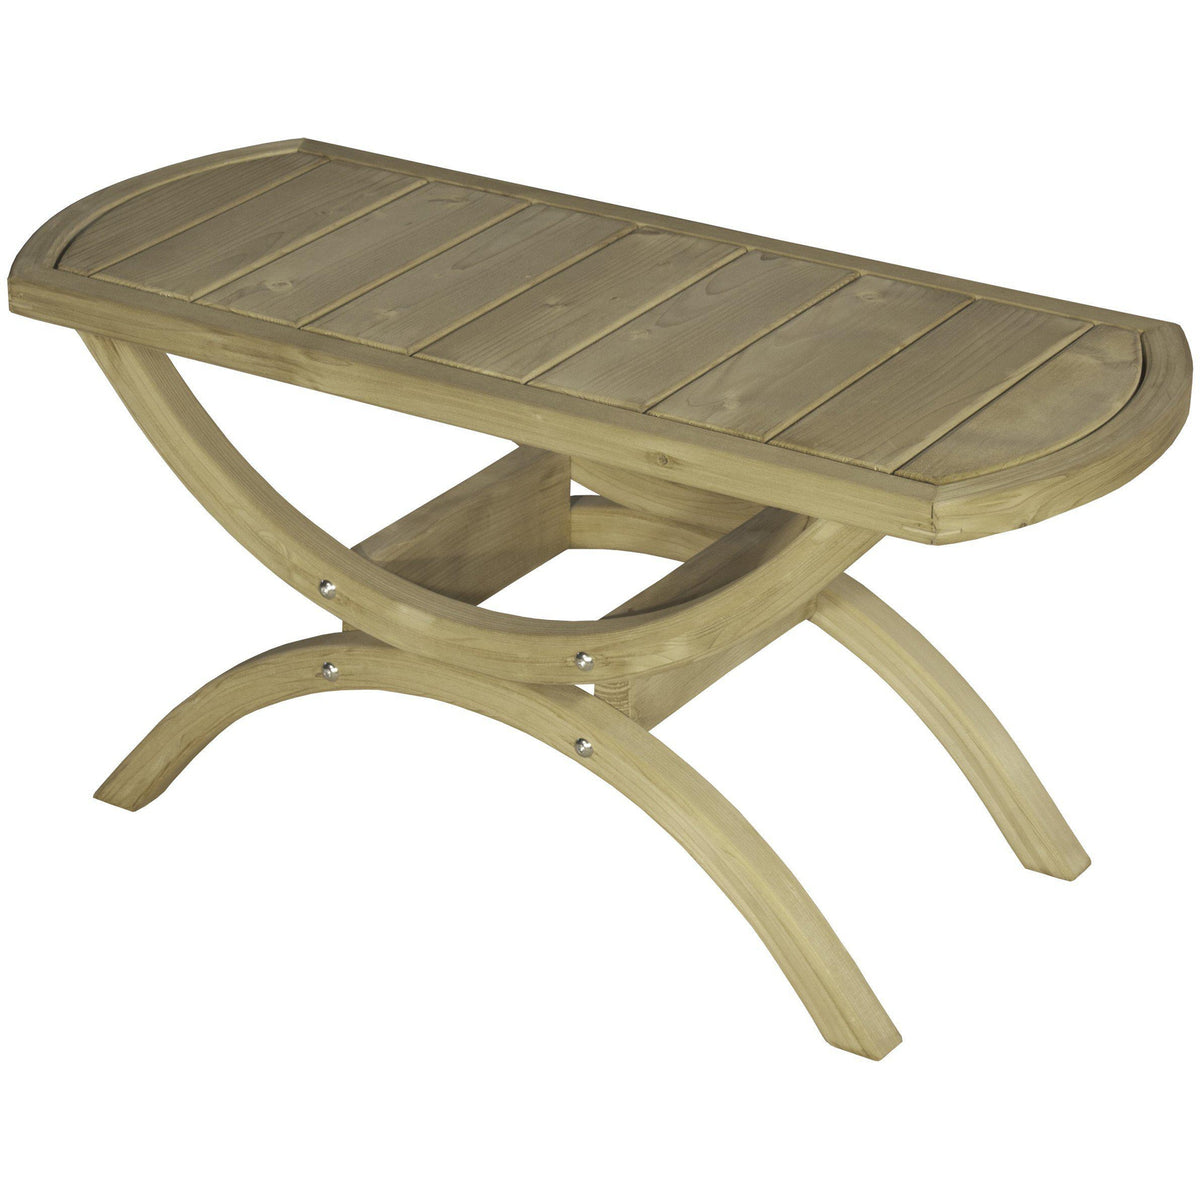 Tavolino Table, from Byer of Maine